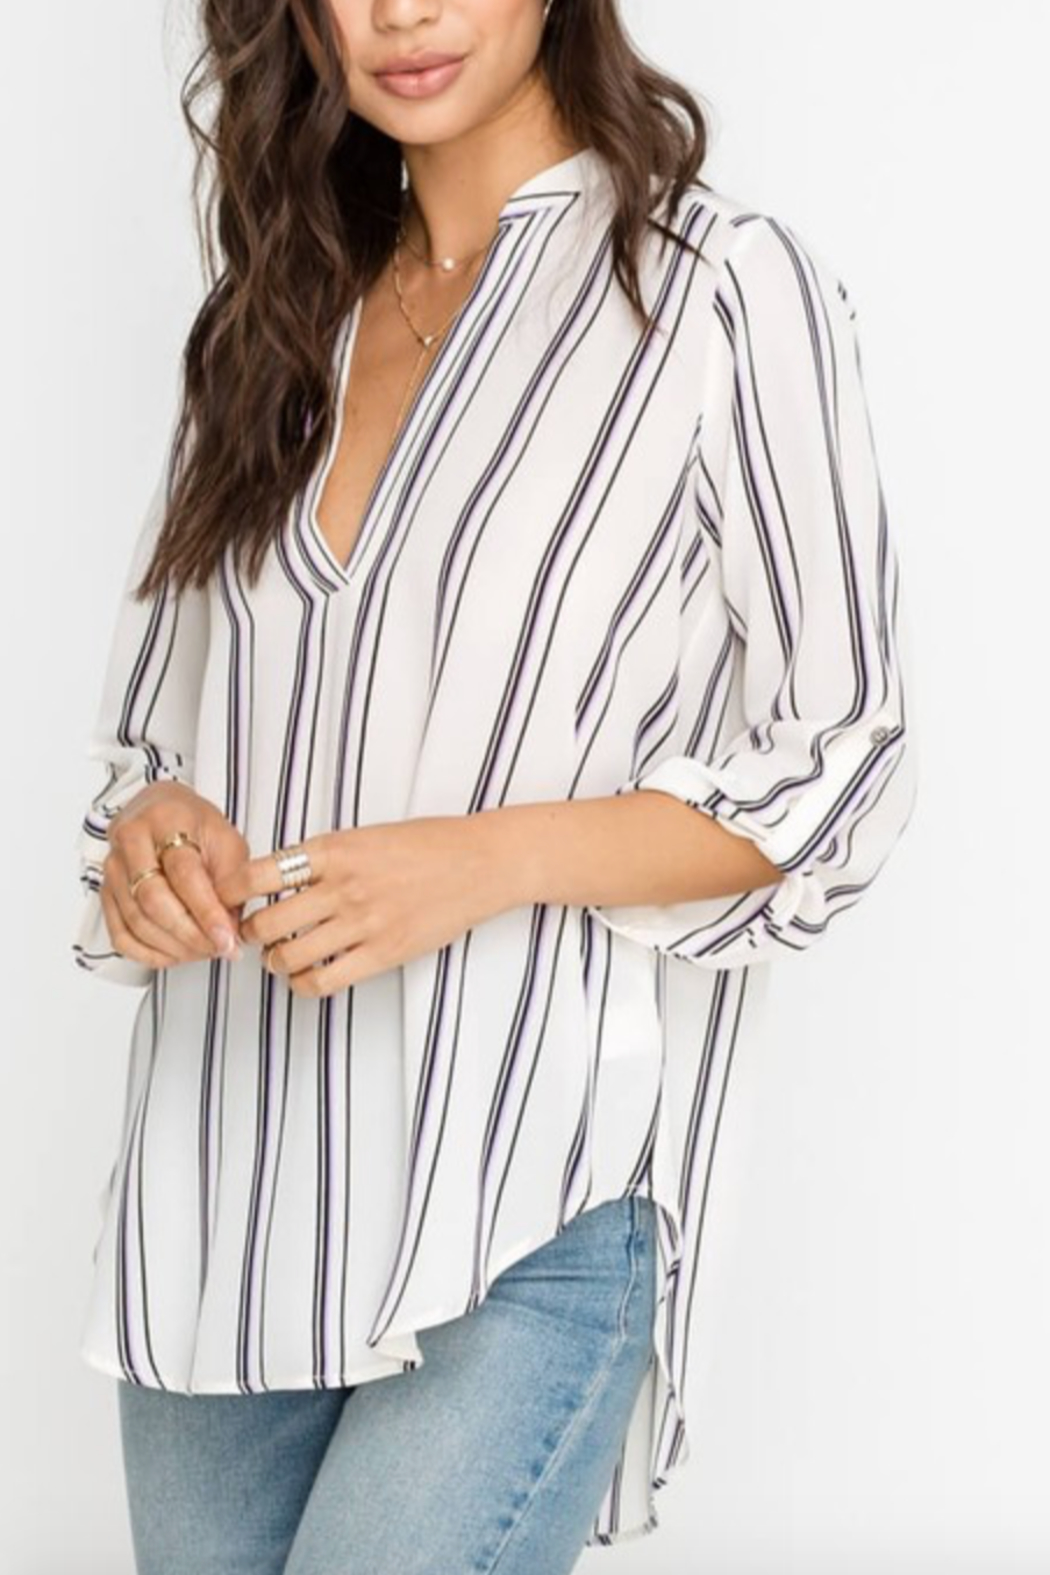 Lush Clothing  Striped Stacey V-Neck Tunic Top - Main Image